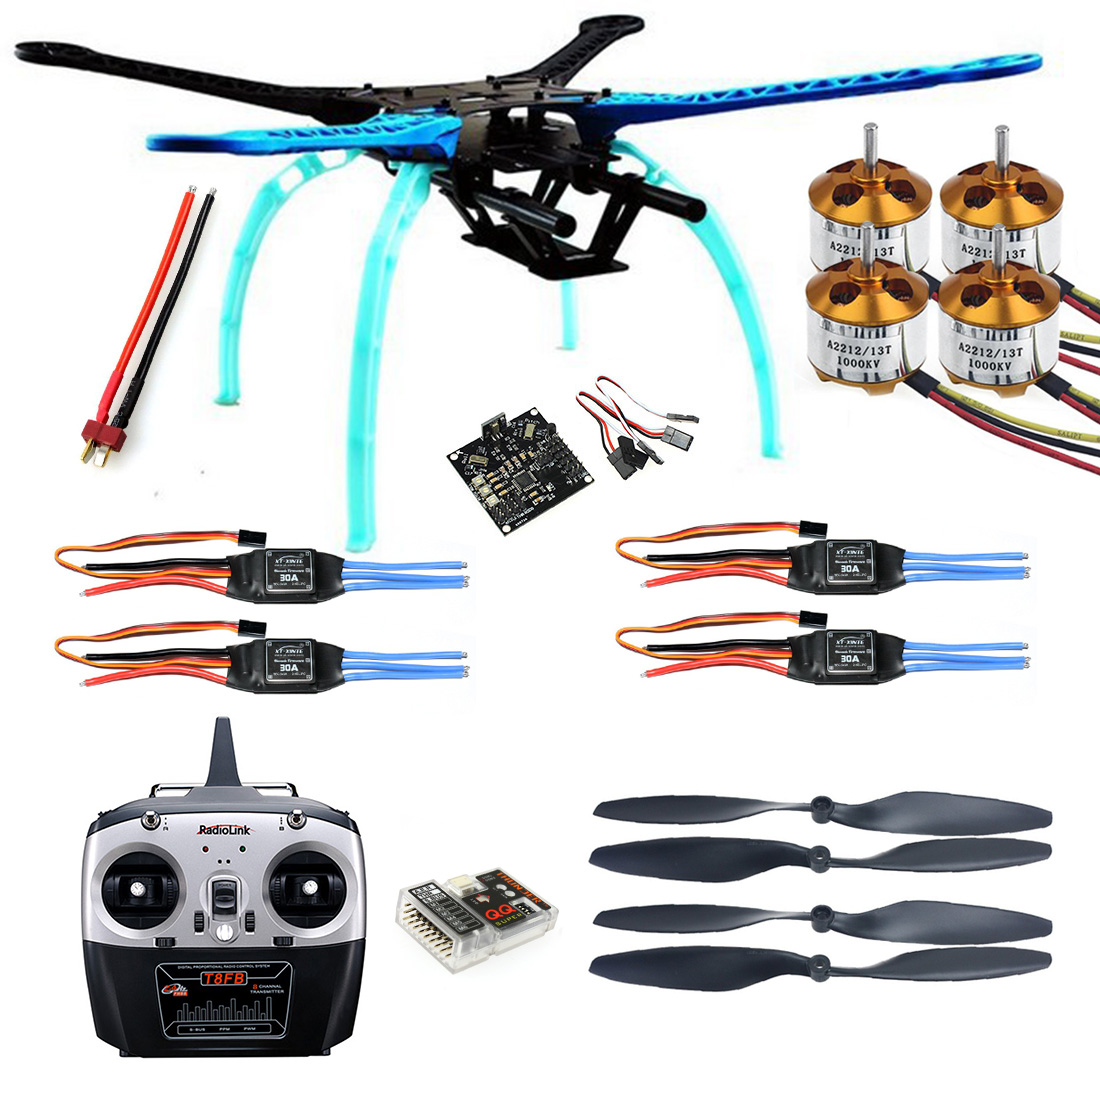 500mm Multi-Rotor Air Frame Kit S500 w/ Landing Gear + ESC + Motor + KK XCOPTER V2.9 Board + RX&TX + Propellers F08151-A 2017 new flower girls party dress embroidered gownceremonial robe dress formal bridesmaid wedding girl christmas princess robe